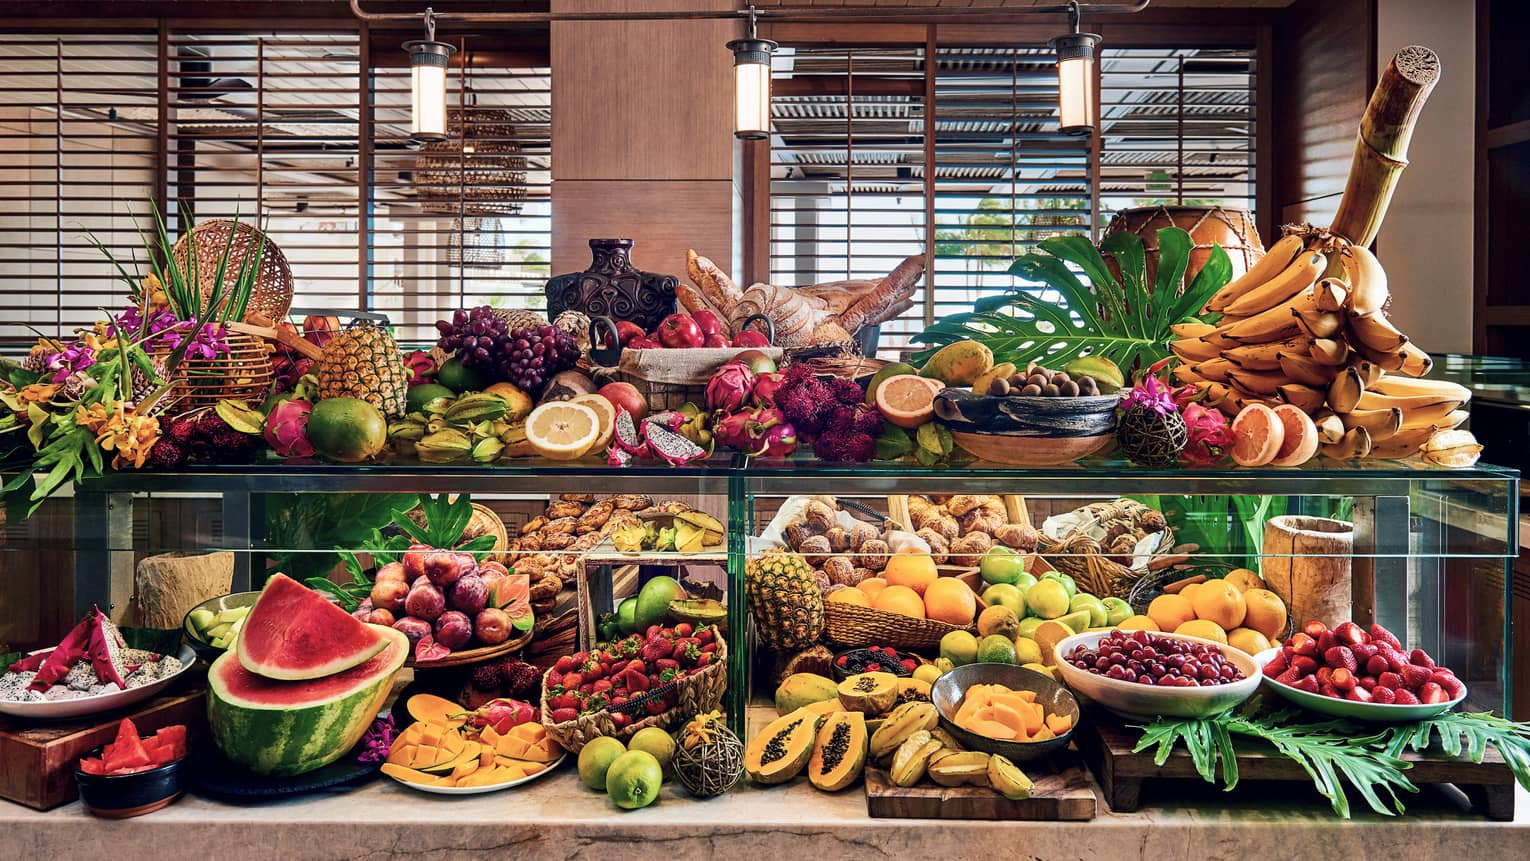 Large brunch fruit spread across buffet counter